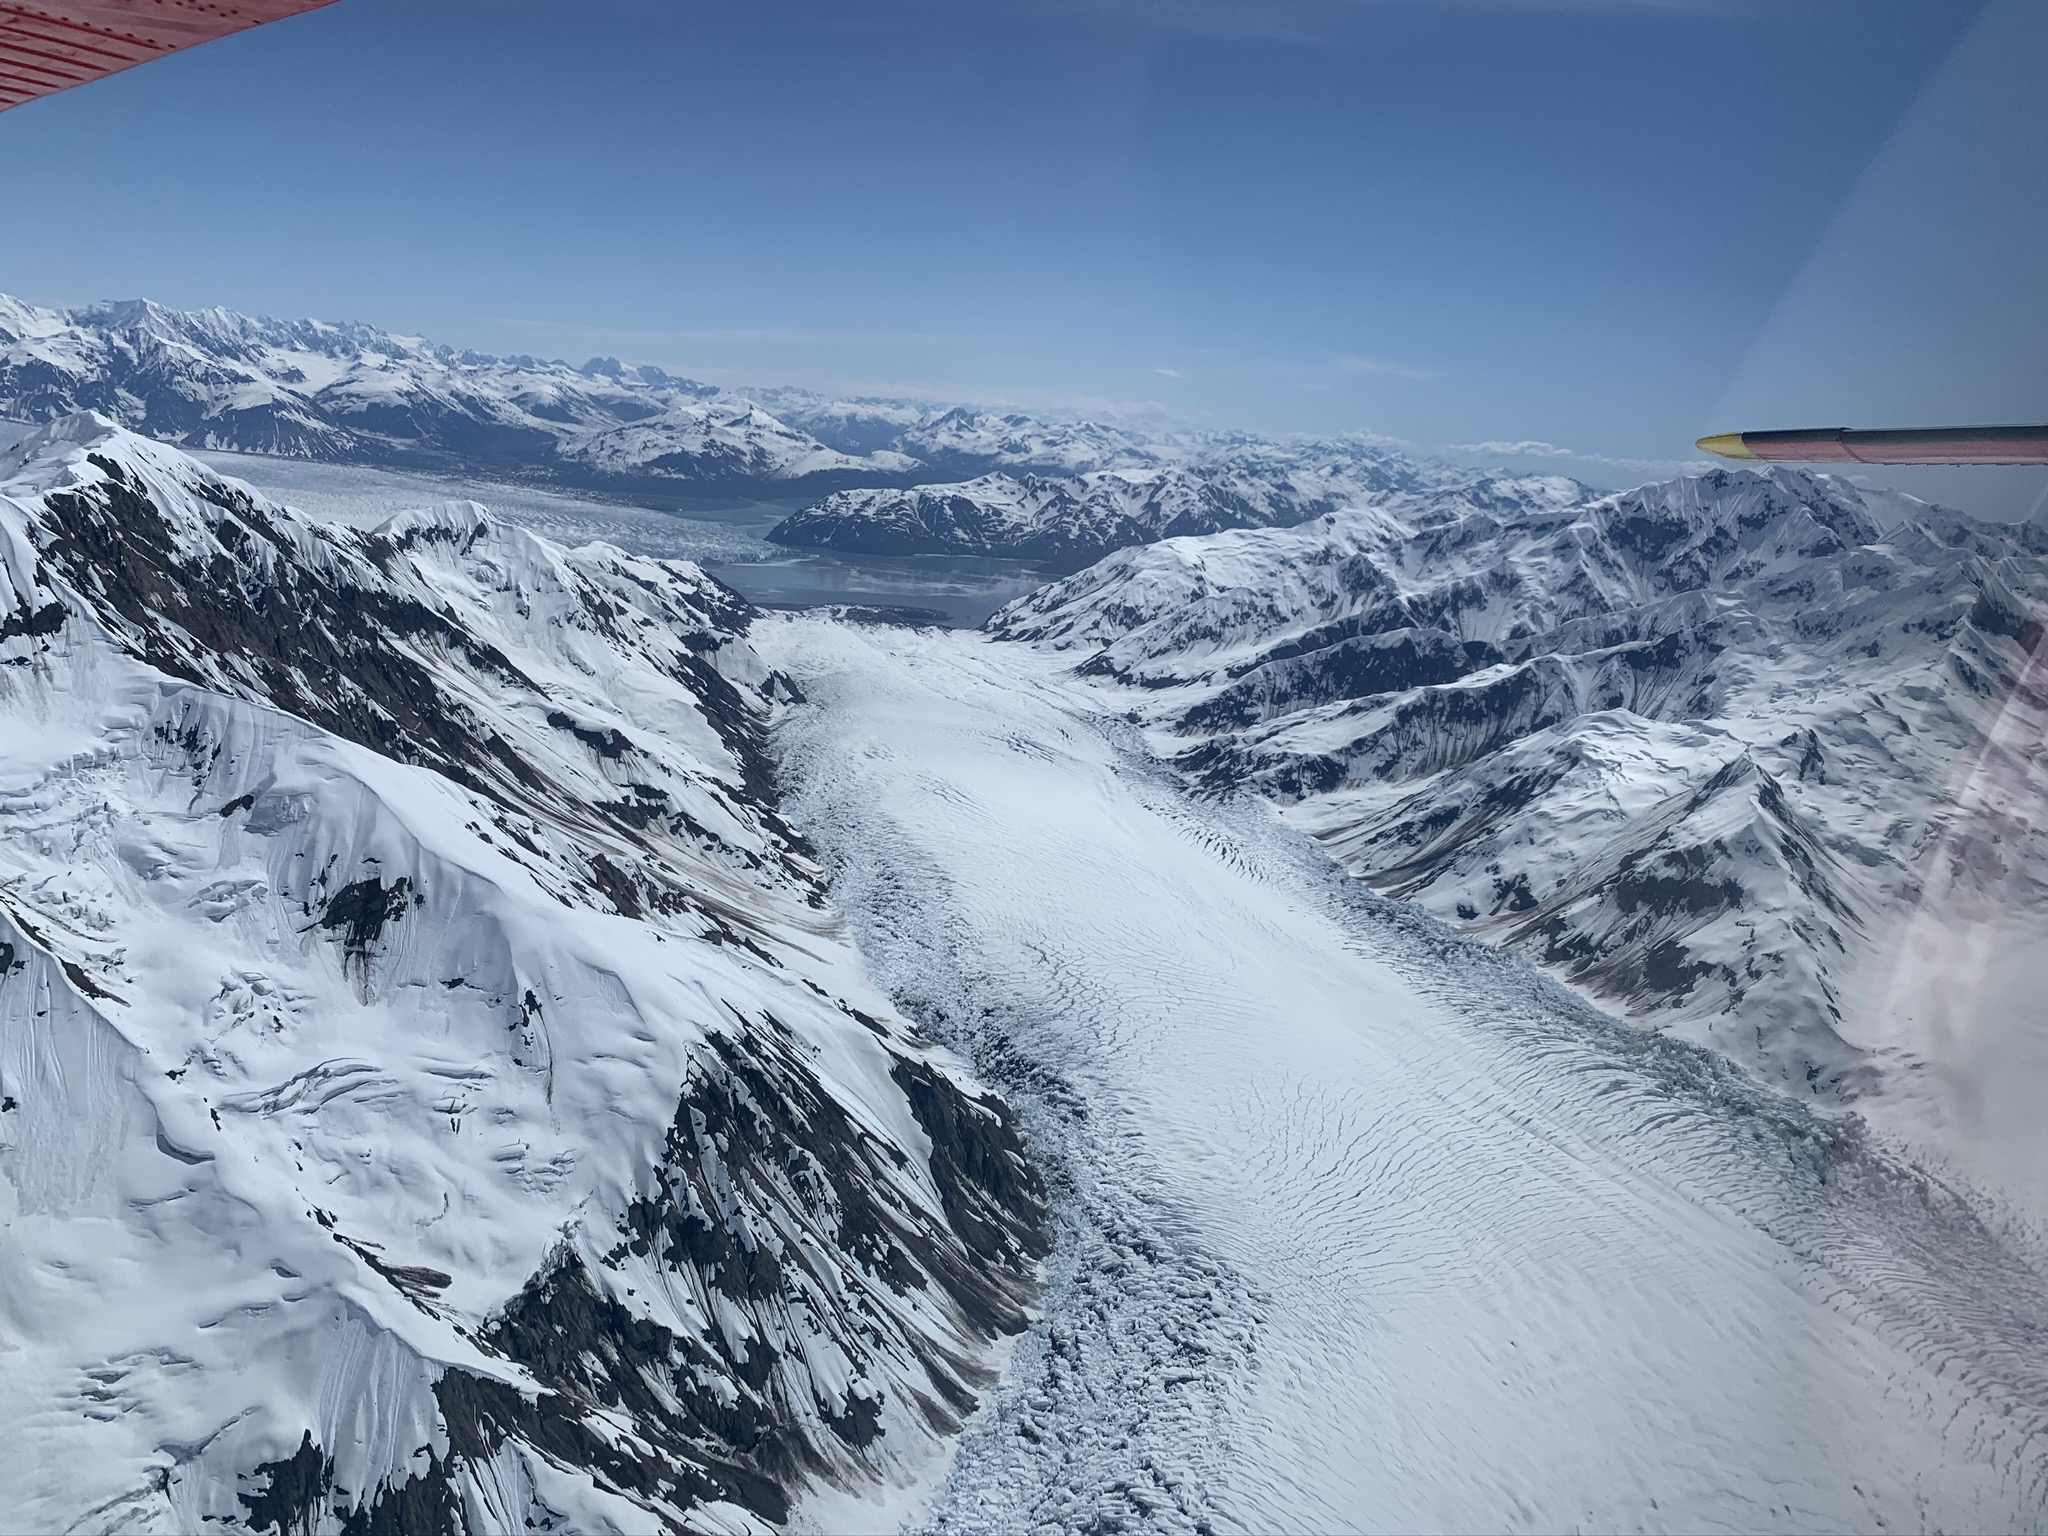 Turner Glacier from Helicopter